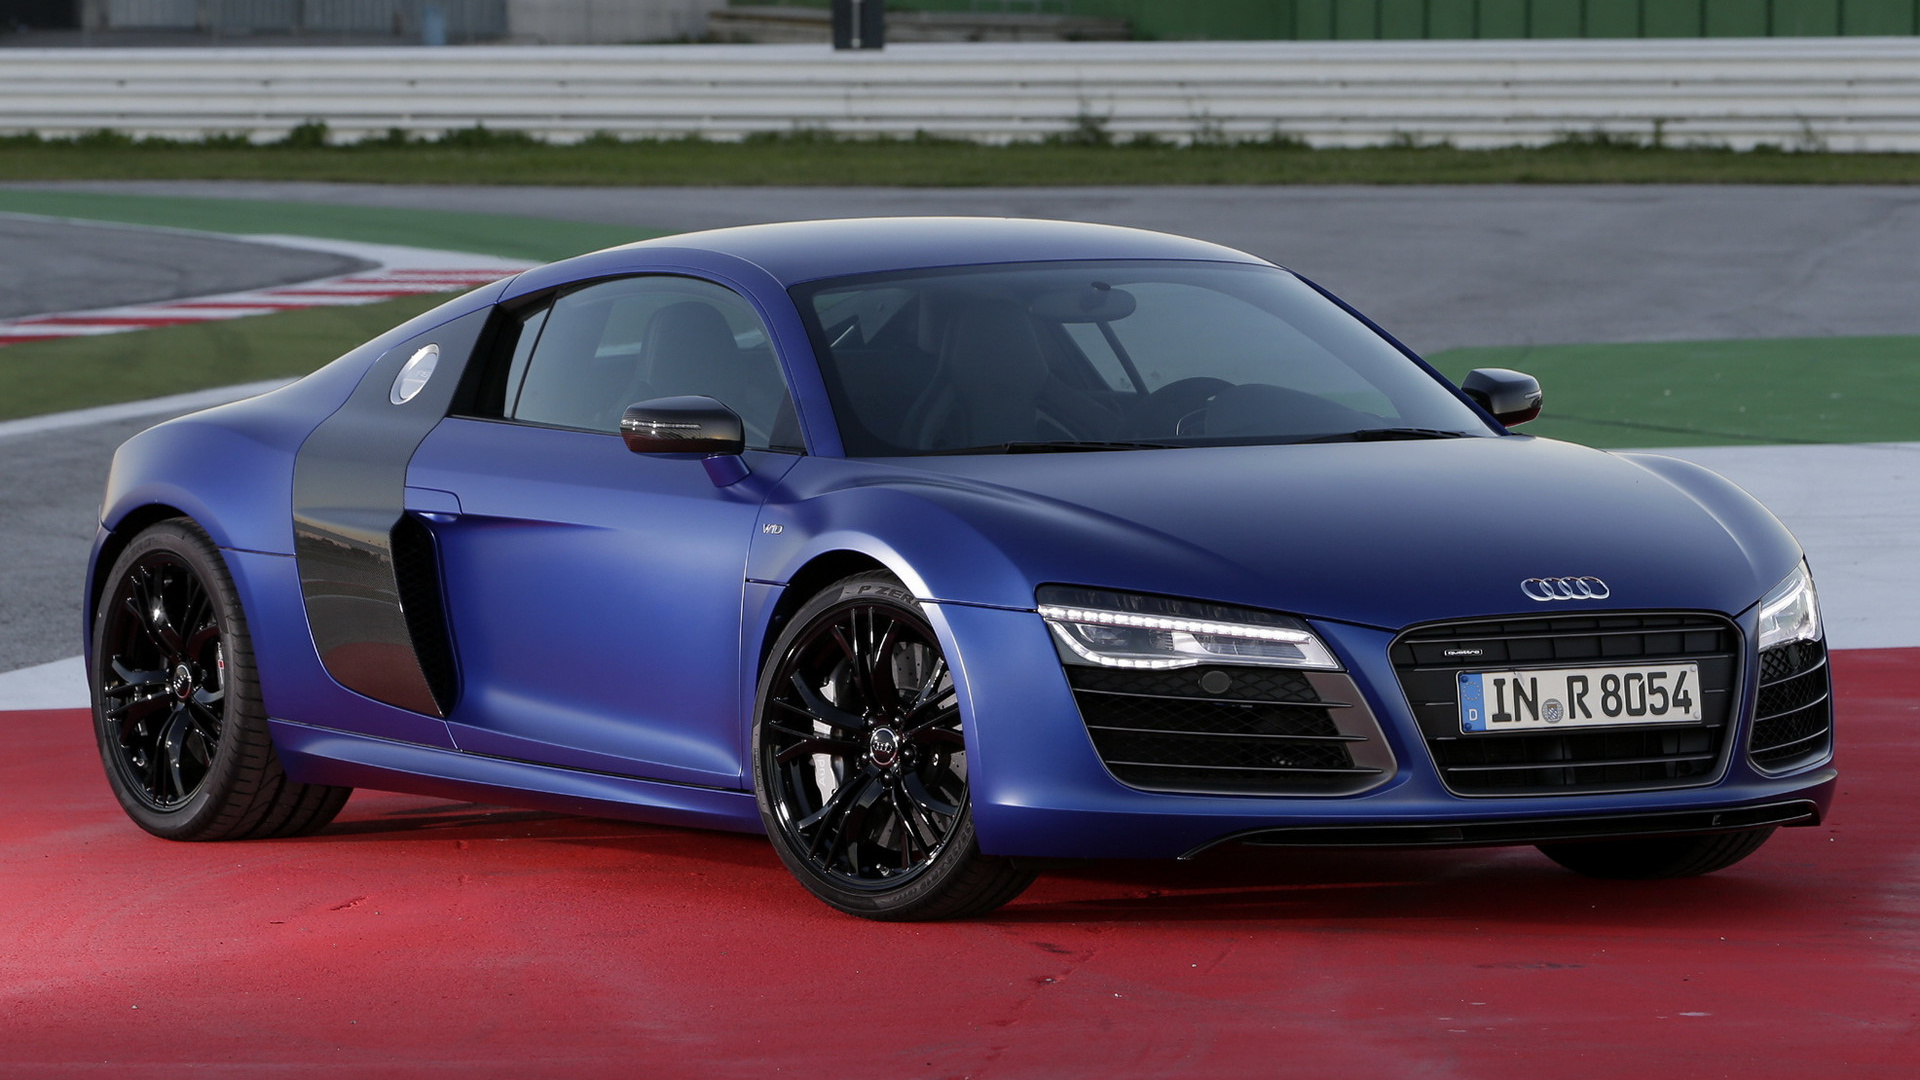 Audi R8 V10 Plus >> 2012 Audi R8 V10 Coupe Plus - Wallpapers and HD Images ...